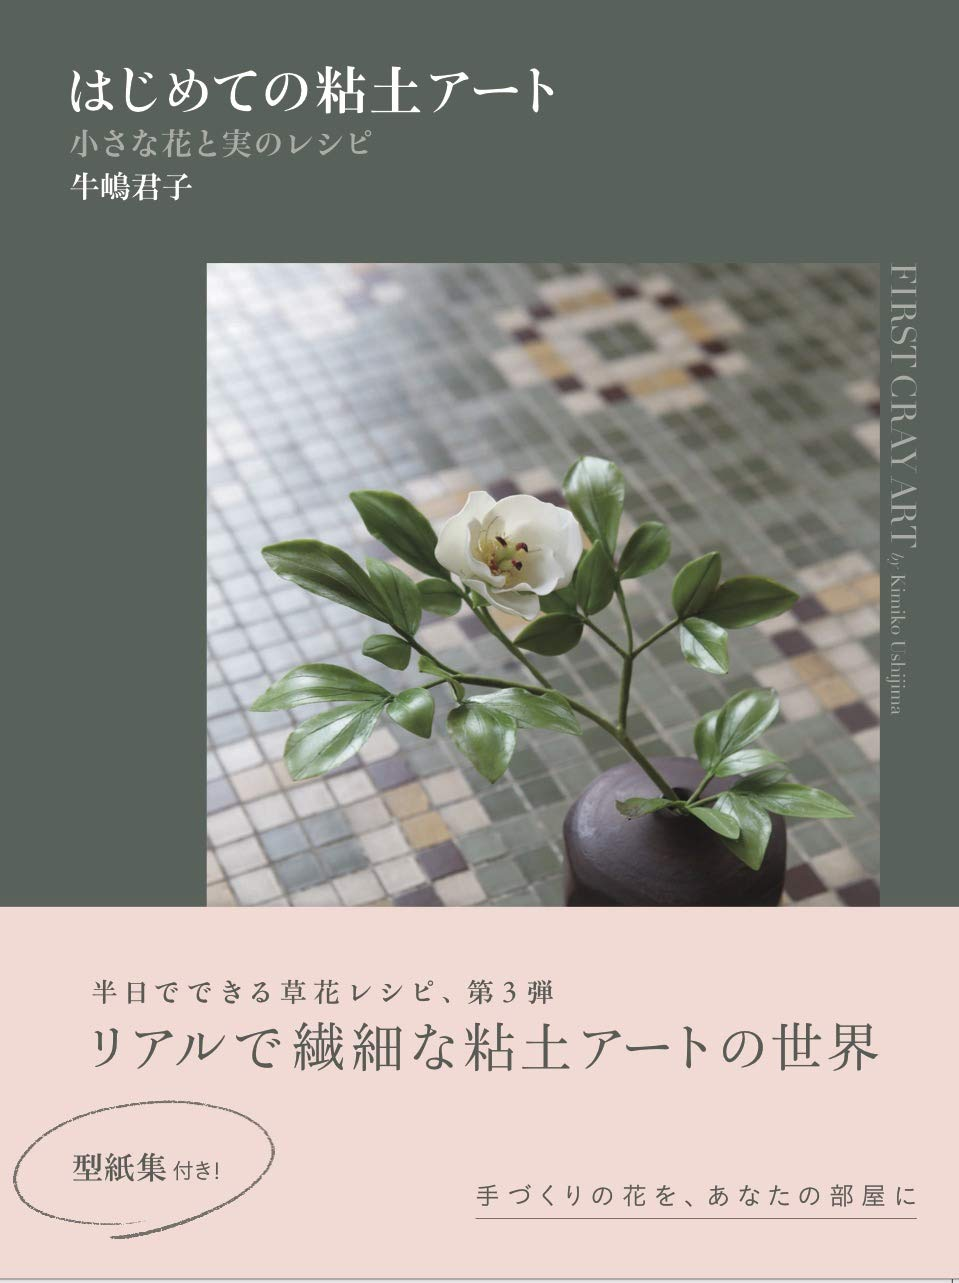 First clay art small flowers and fruits book